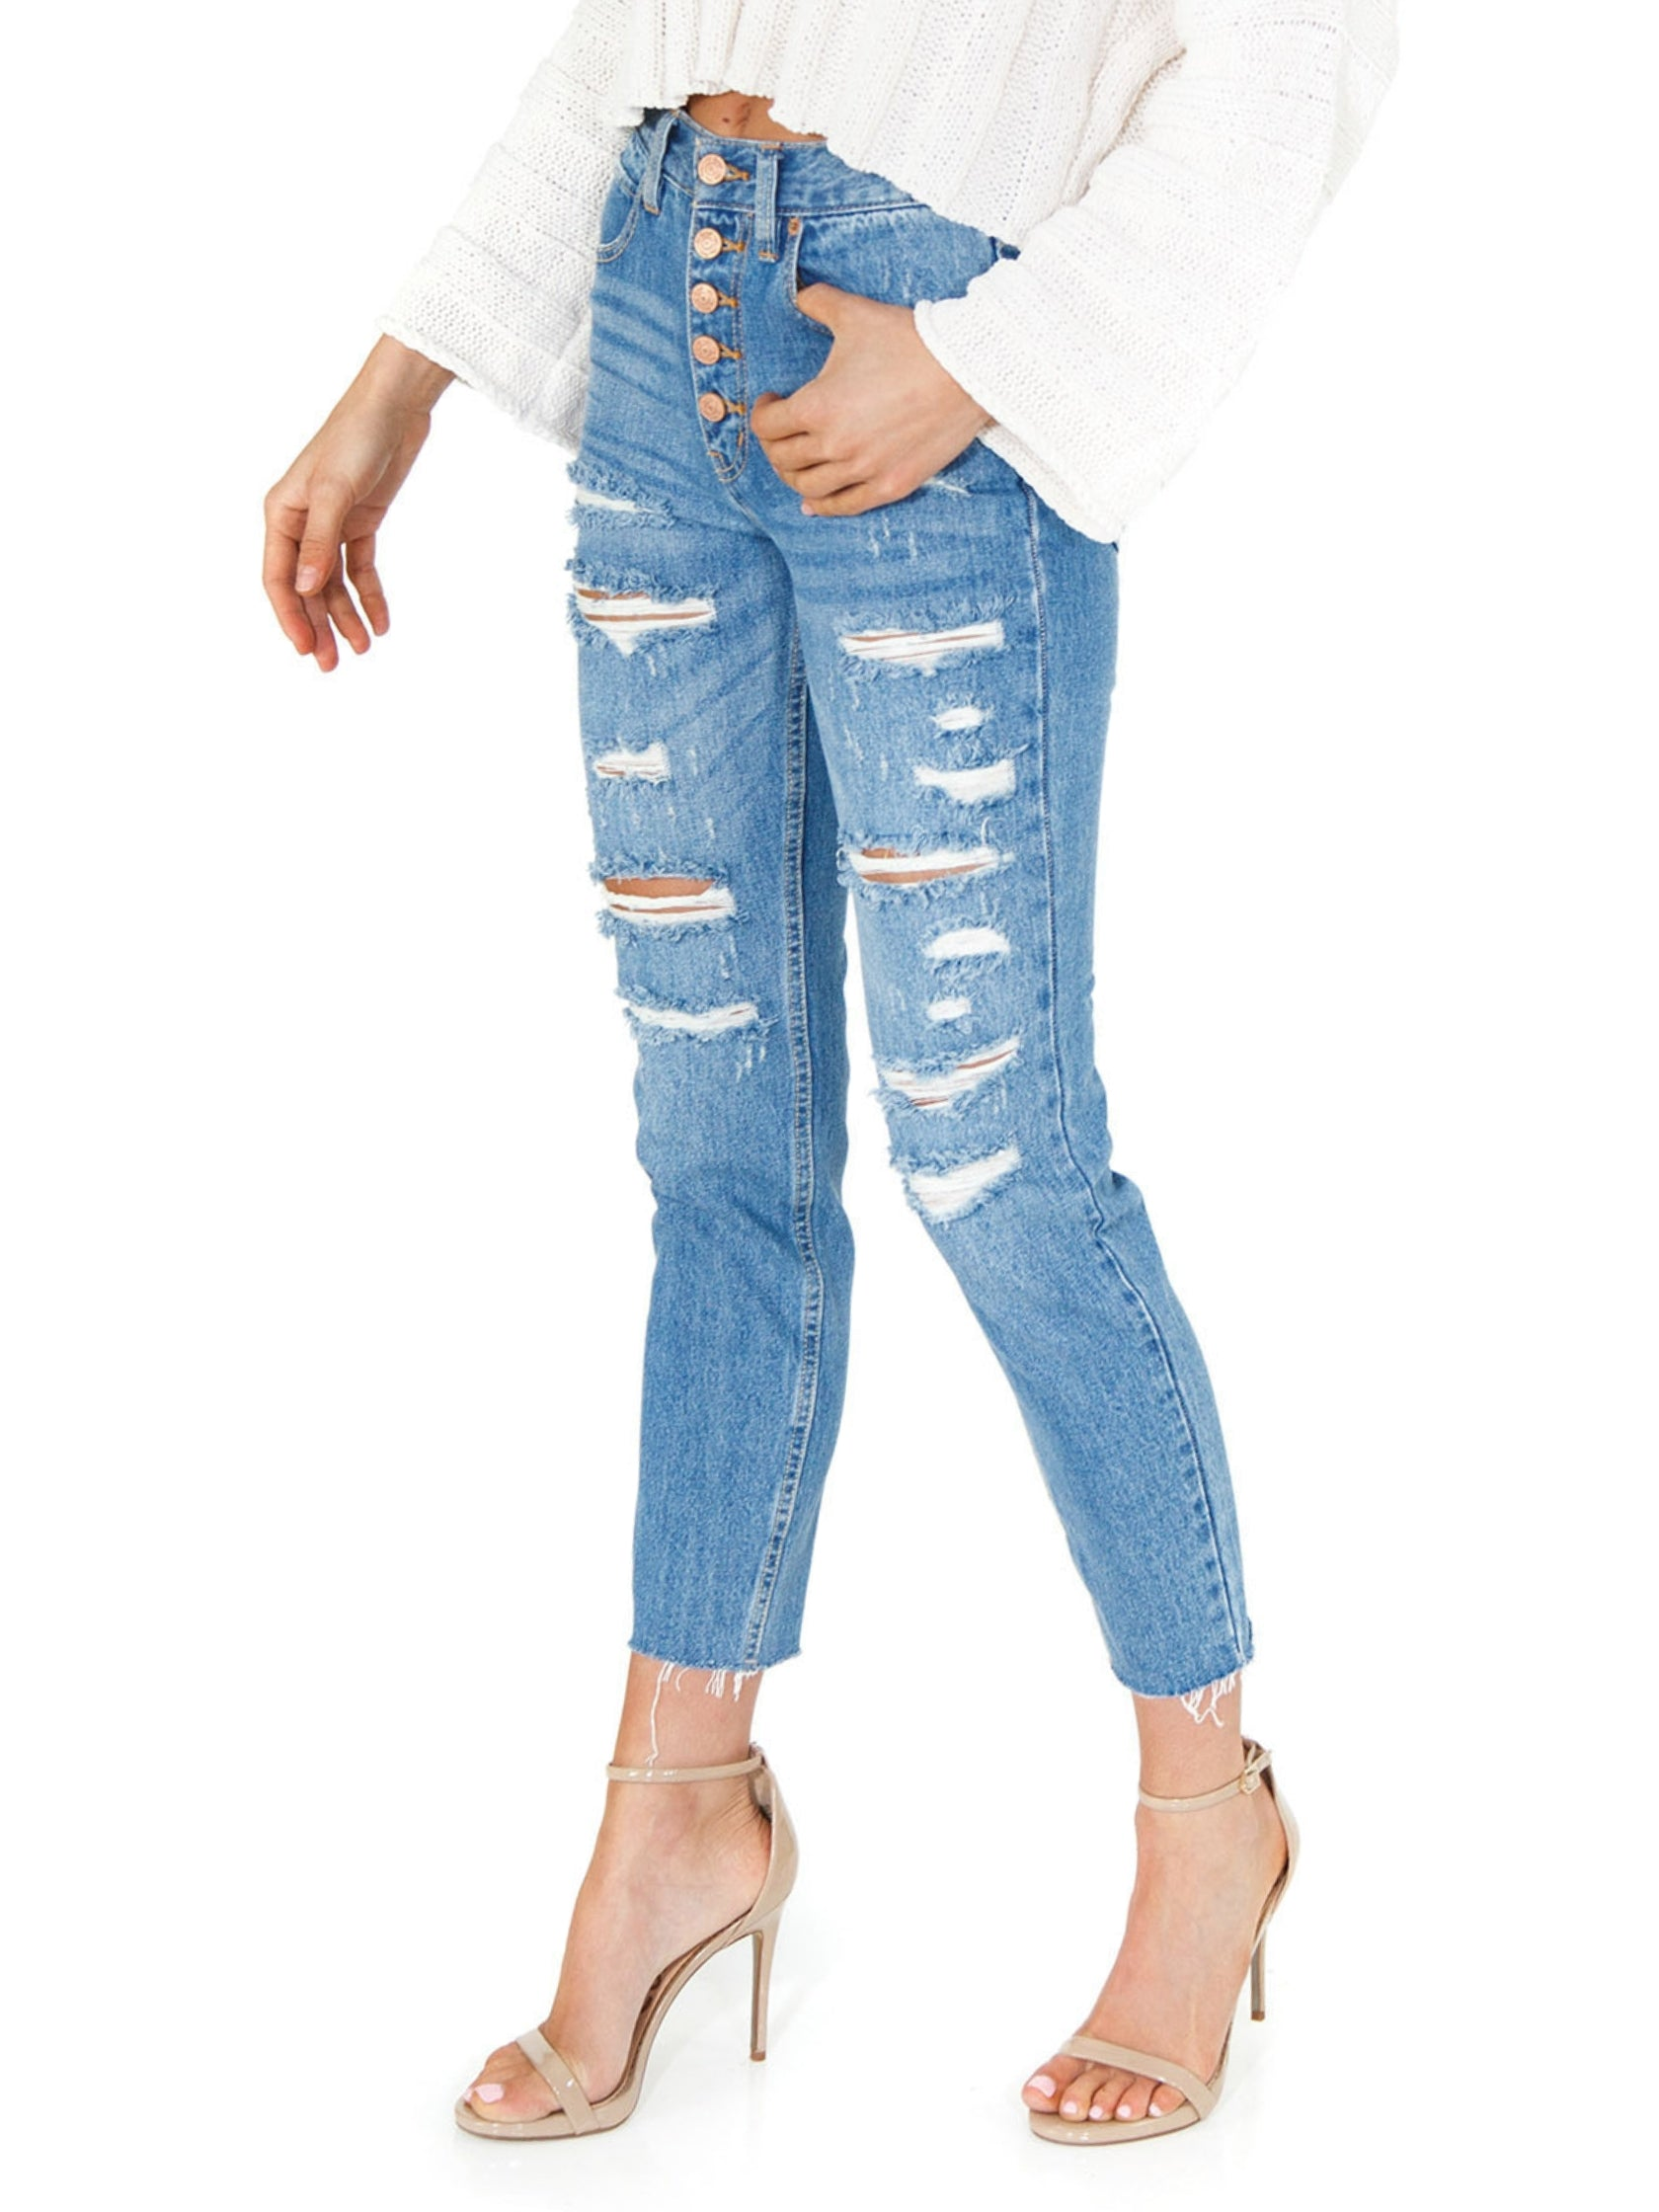 Women wearing a bottoms rental from Free People called Blossom Rigid Skinny Jeans